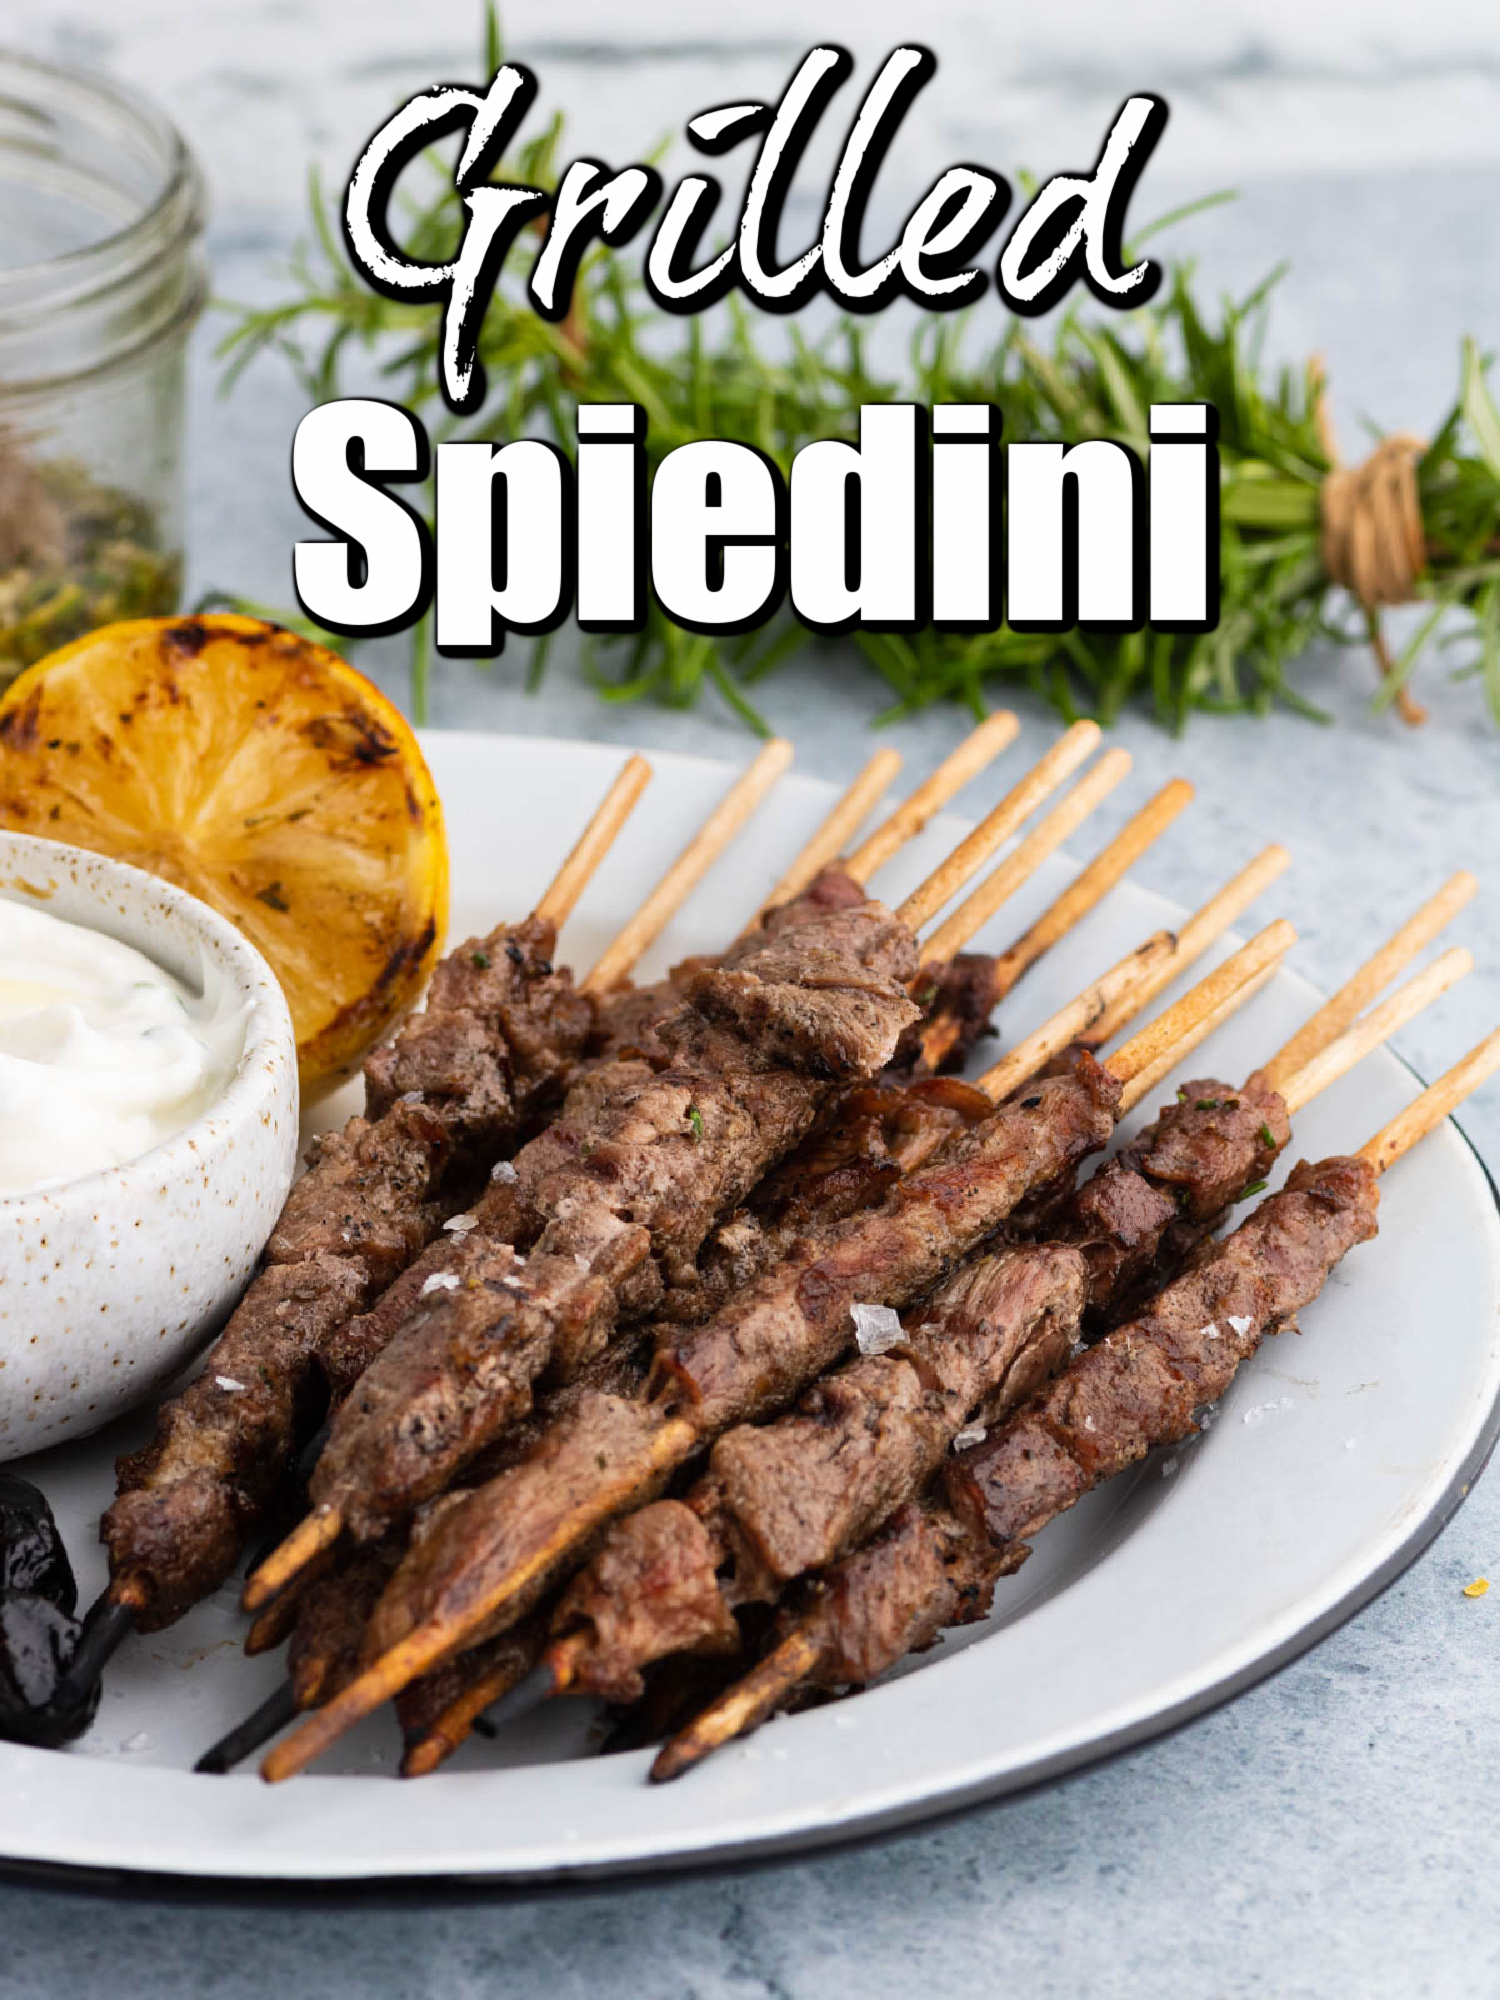 Grilled Spiedini is a quick, easy dinner or appetizer that tastes amazing!